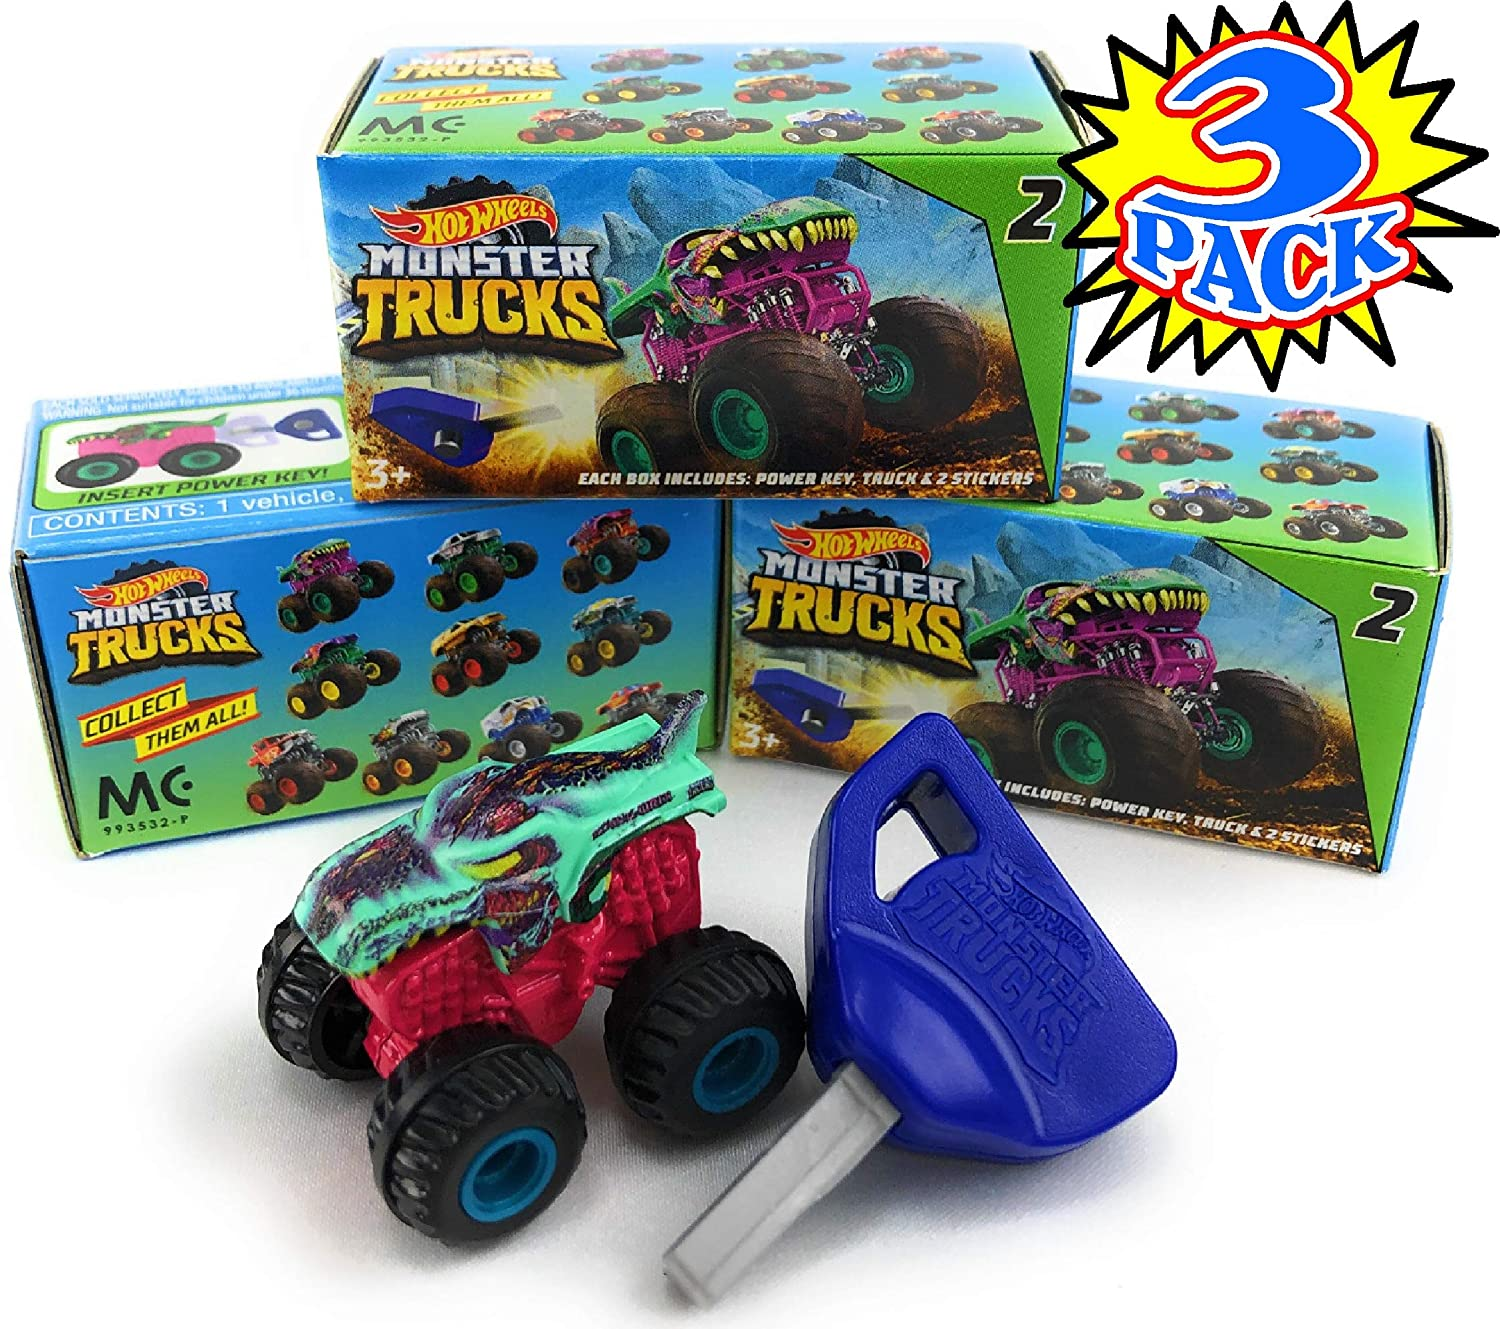 Hot Wheels Monster Trucks Mini Mystery Trucks with Key Launcher (Assorted Series) Blind Box Gift Set Party Bundle - 3 Pack